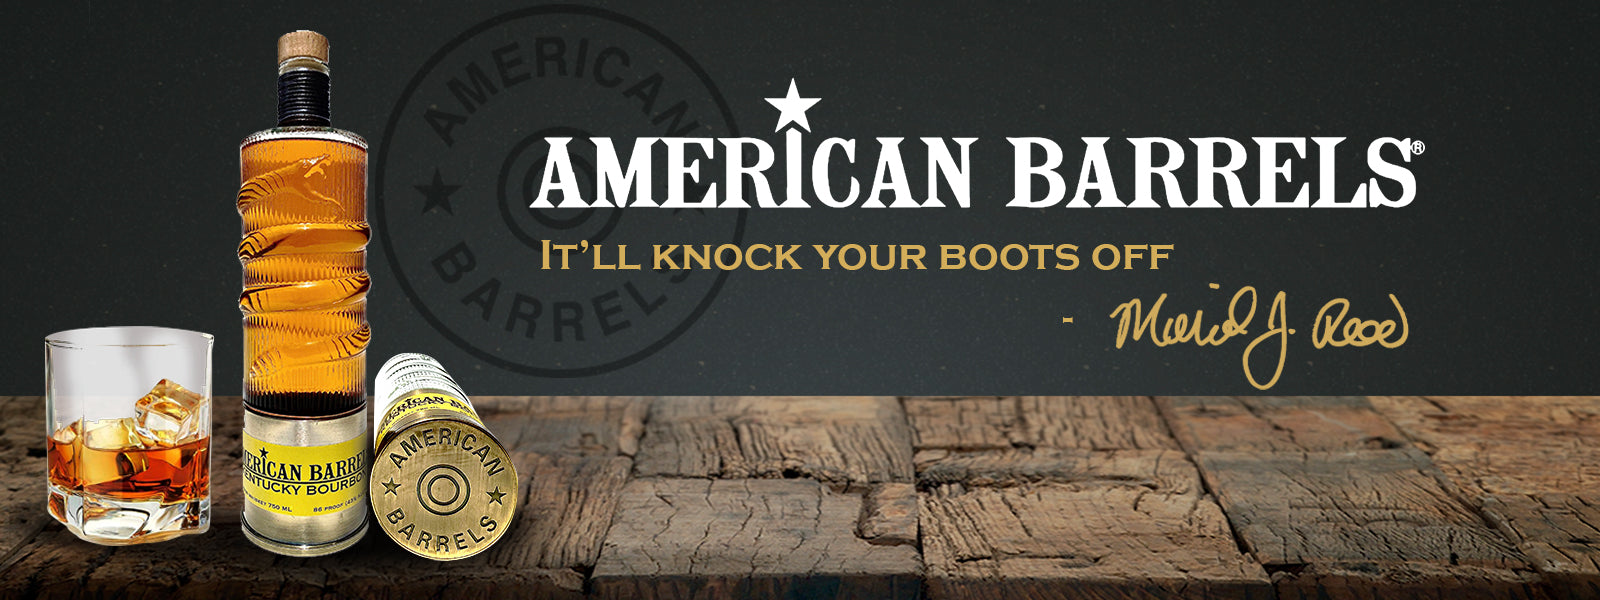 Buy American Barrels Whiskey Online at CaskCartel.com